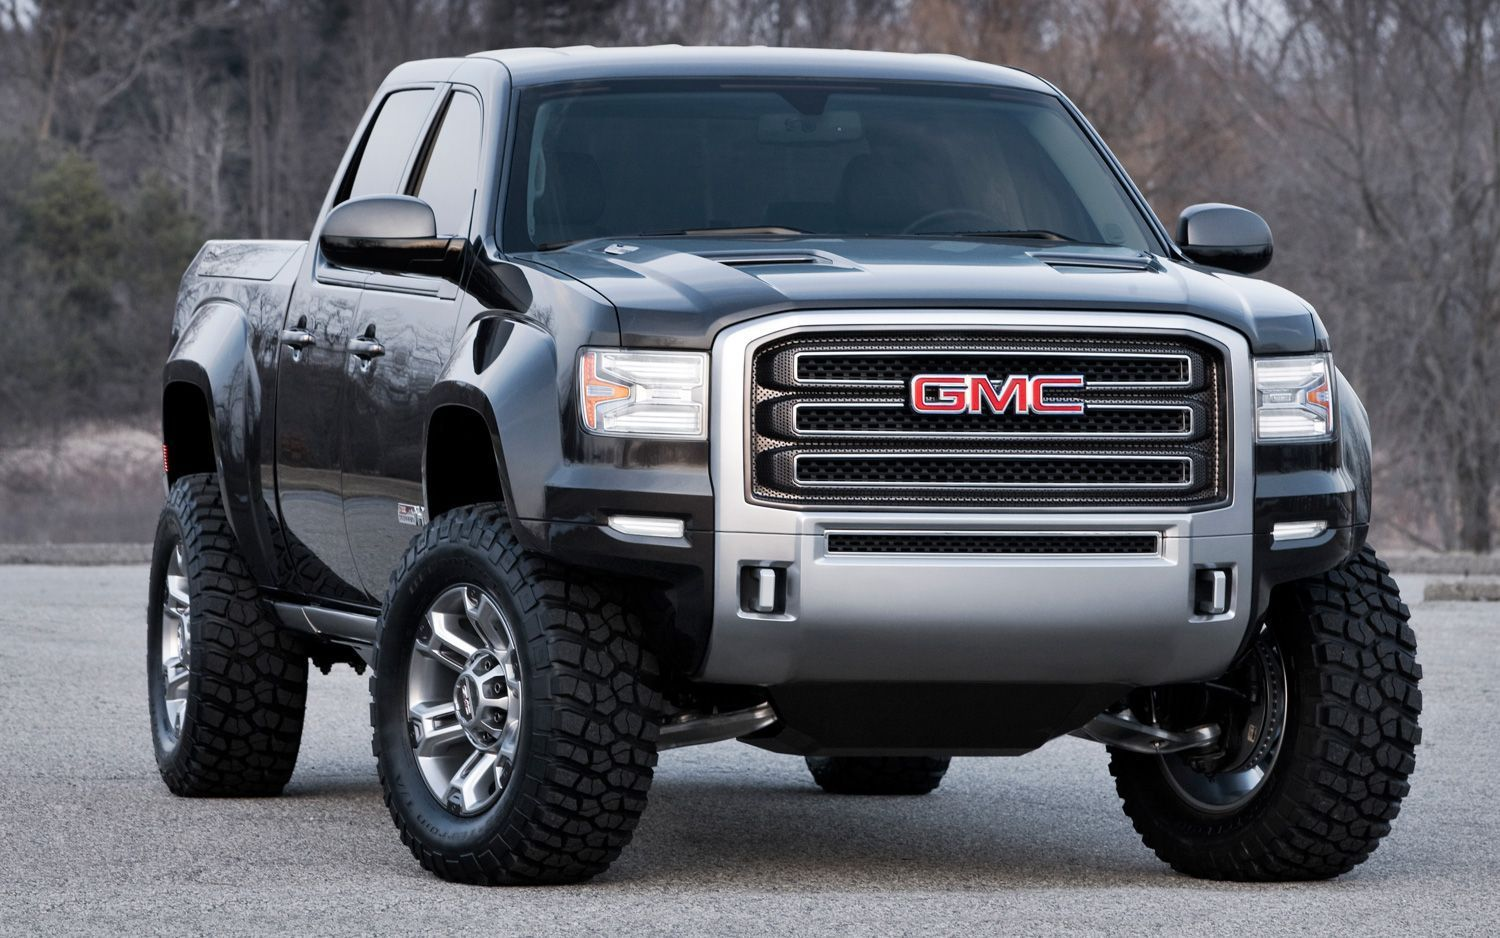 2020 Gmc Sierra 2500 Heavy Duty Updates Changes And Price New Car Rumor Gmc Sierra Gmc Canyon Gmc